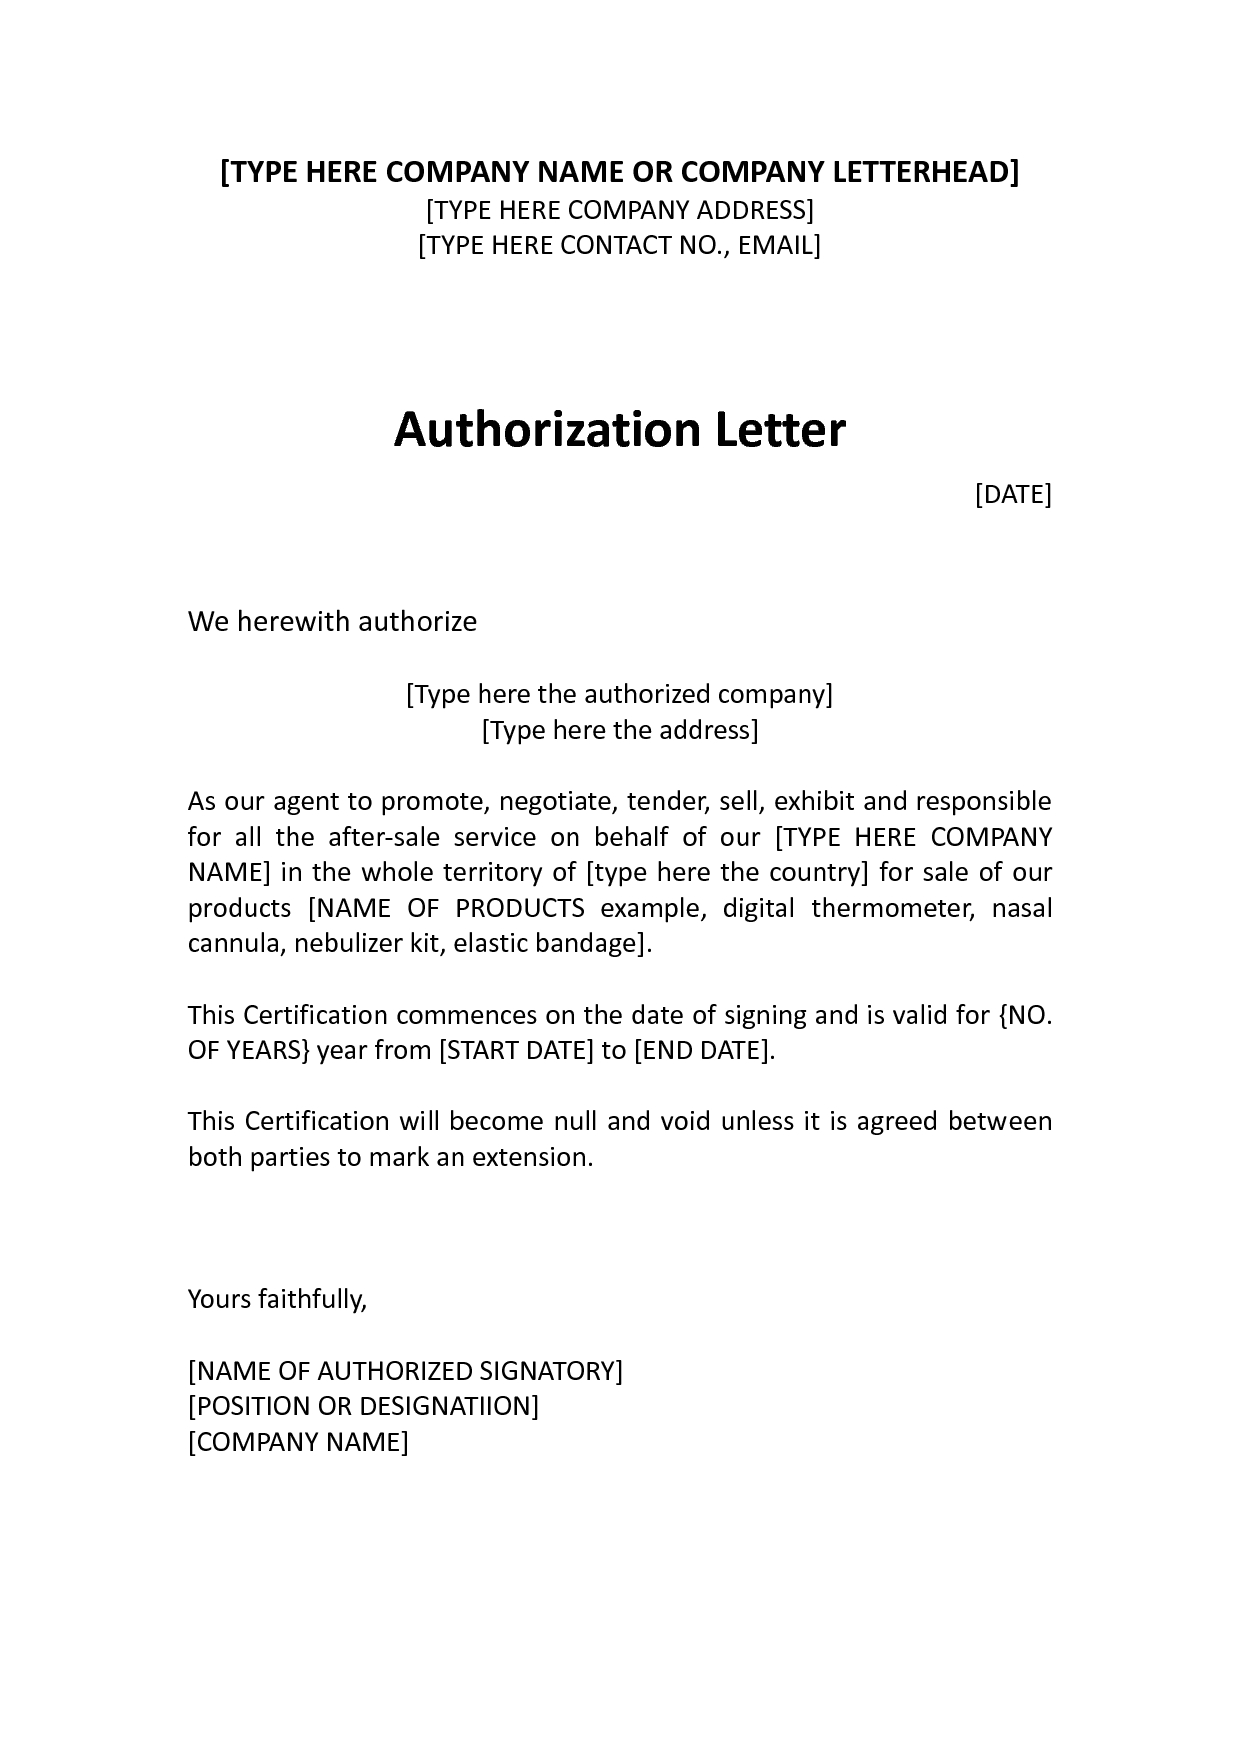 Acknowledgement Of Donation Letter Template - Authorization Distributor Letter Sample Distributor Dealer